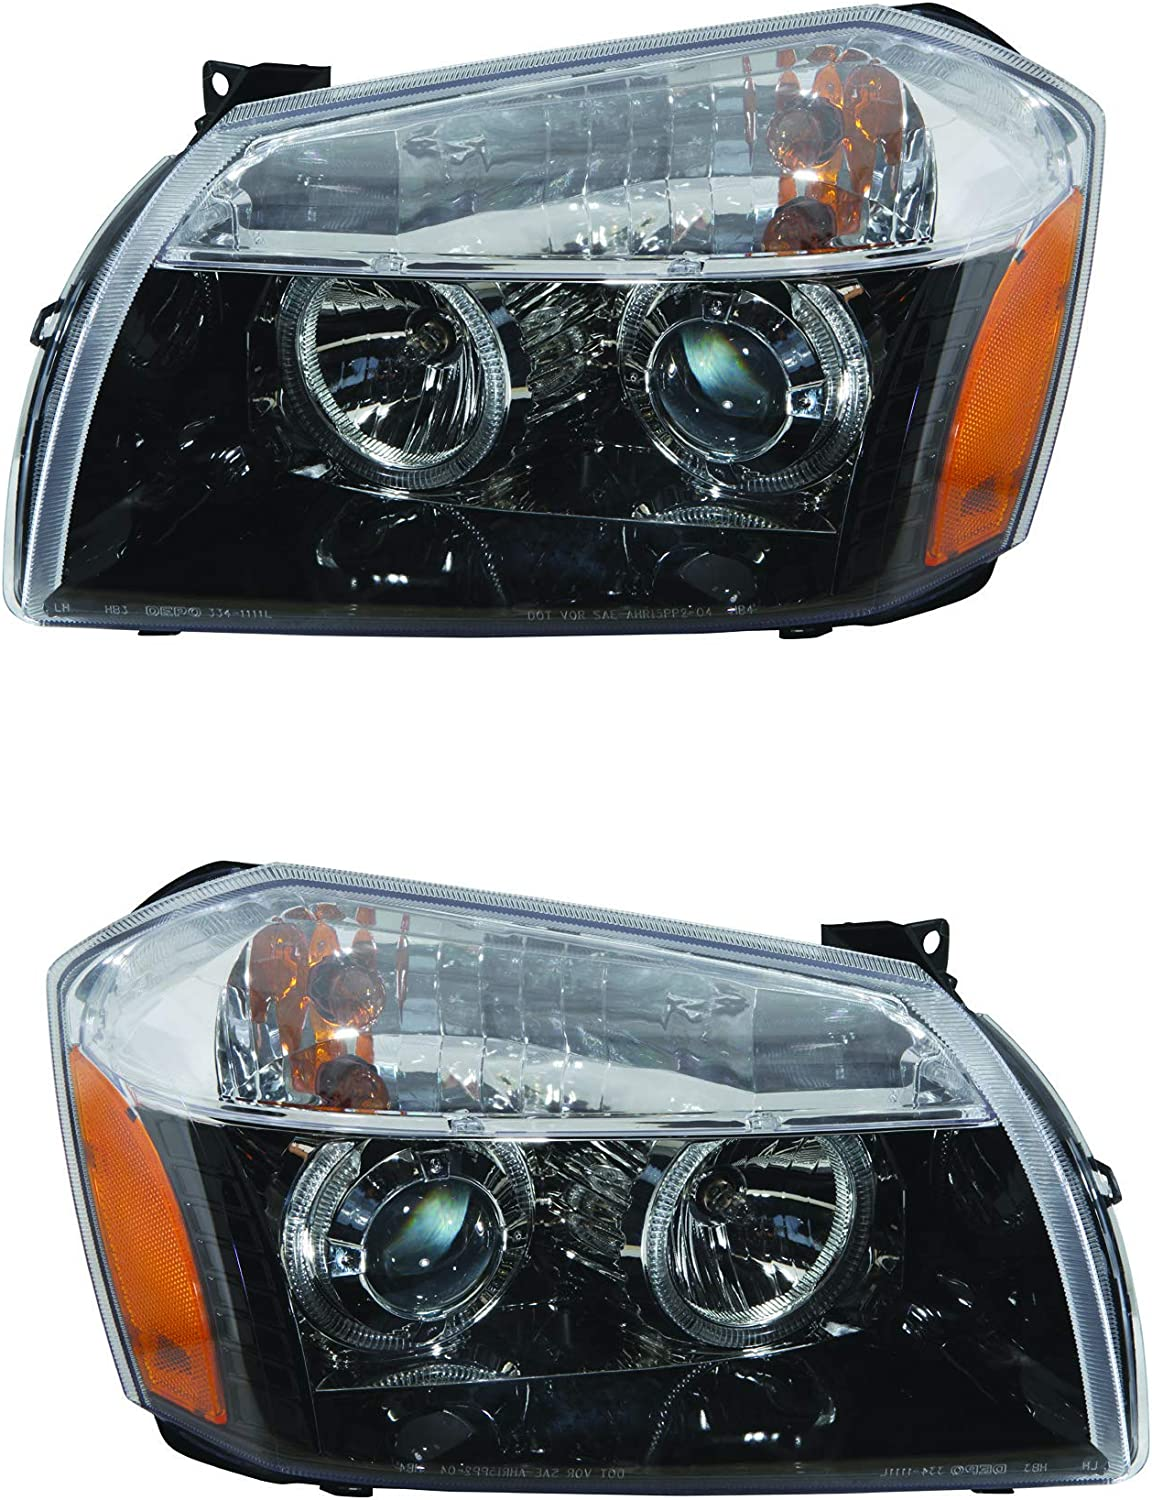 JP Auto Headlight Compatible Special Campaign With Dodge Discount is also underway 2006 Dr 2005 Magnum 2007